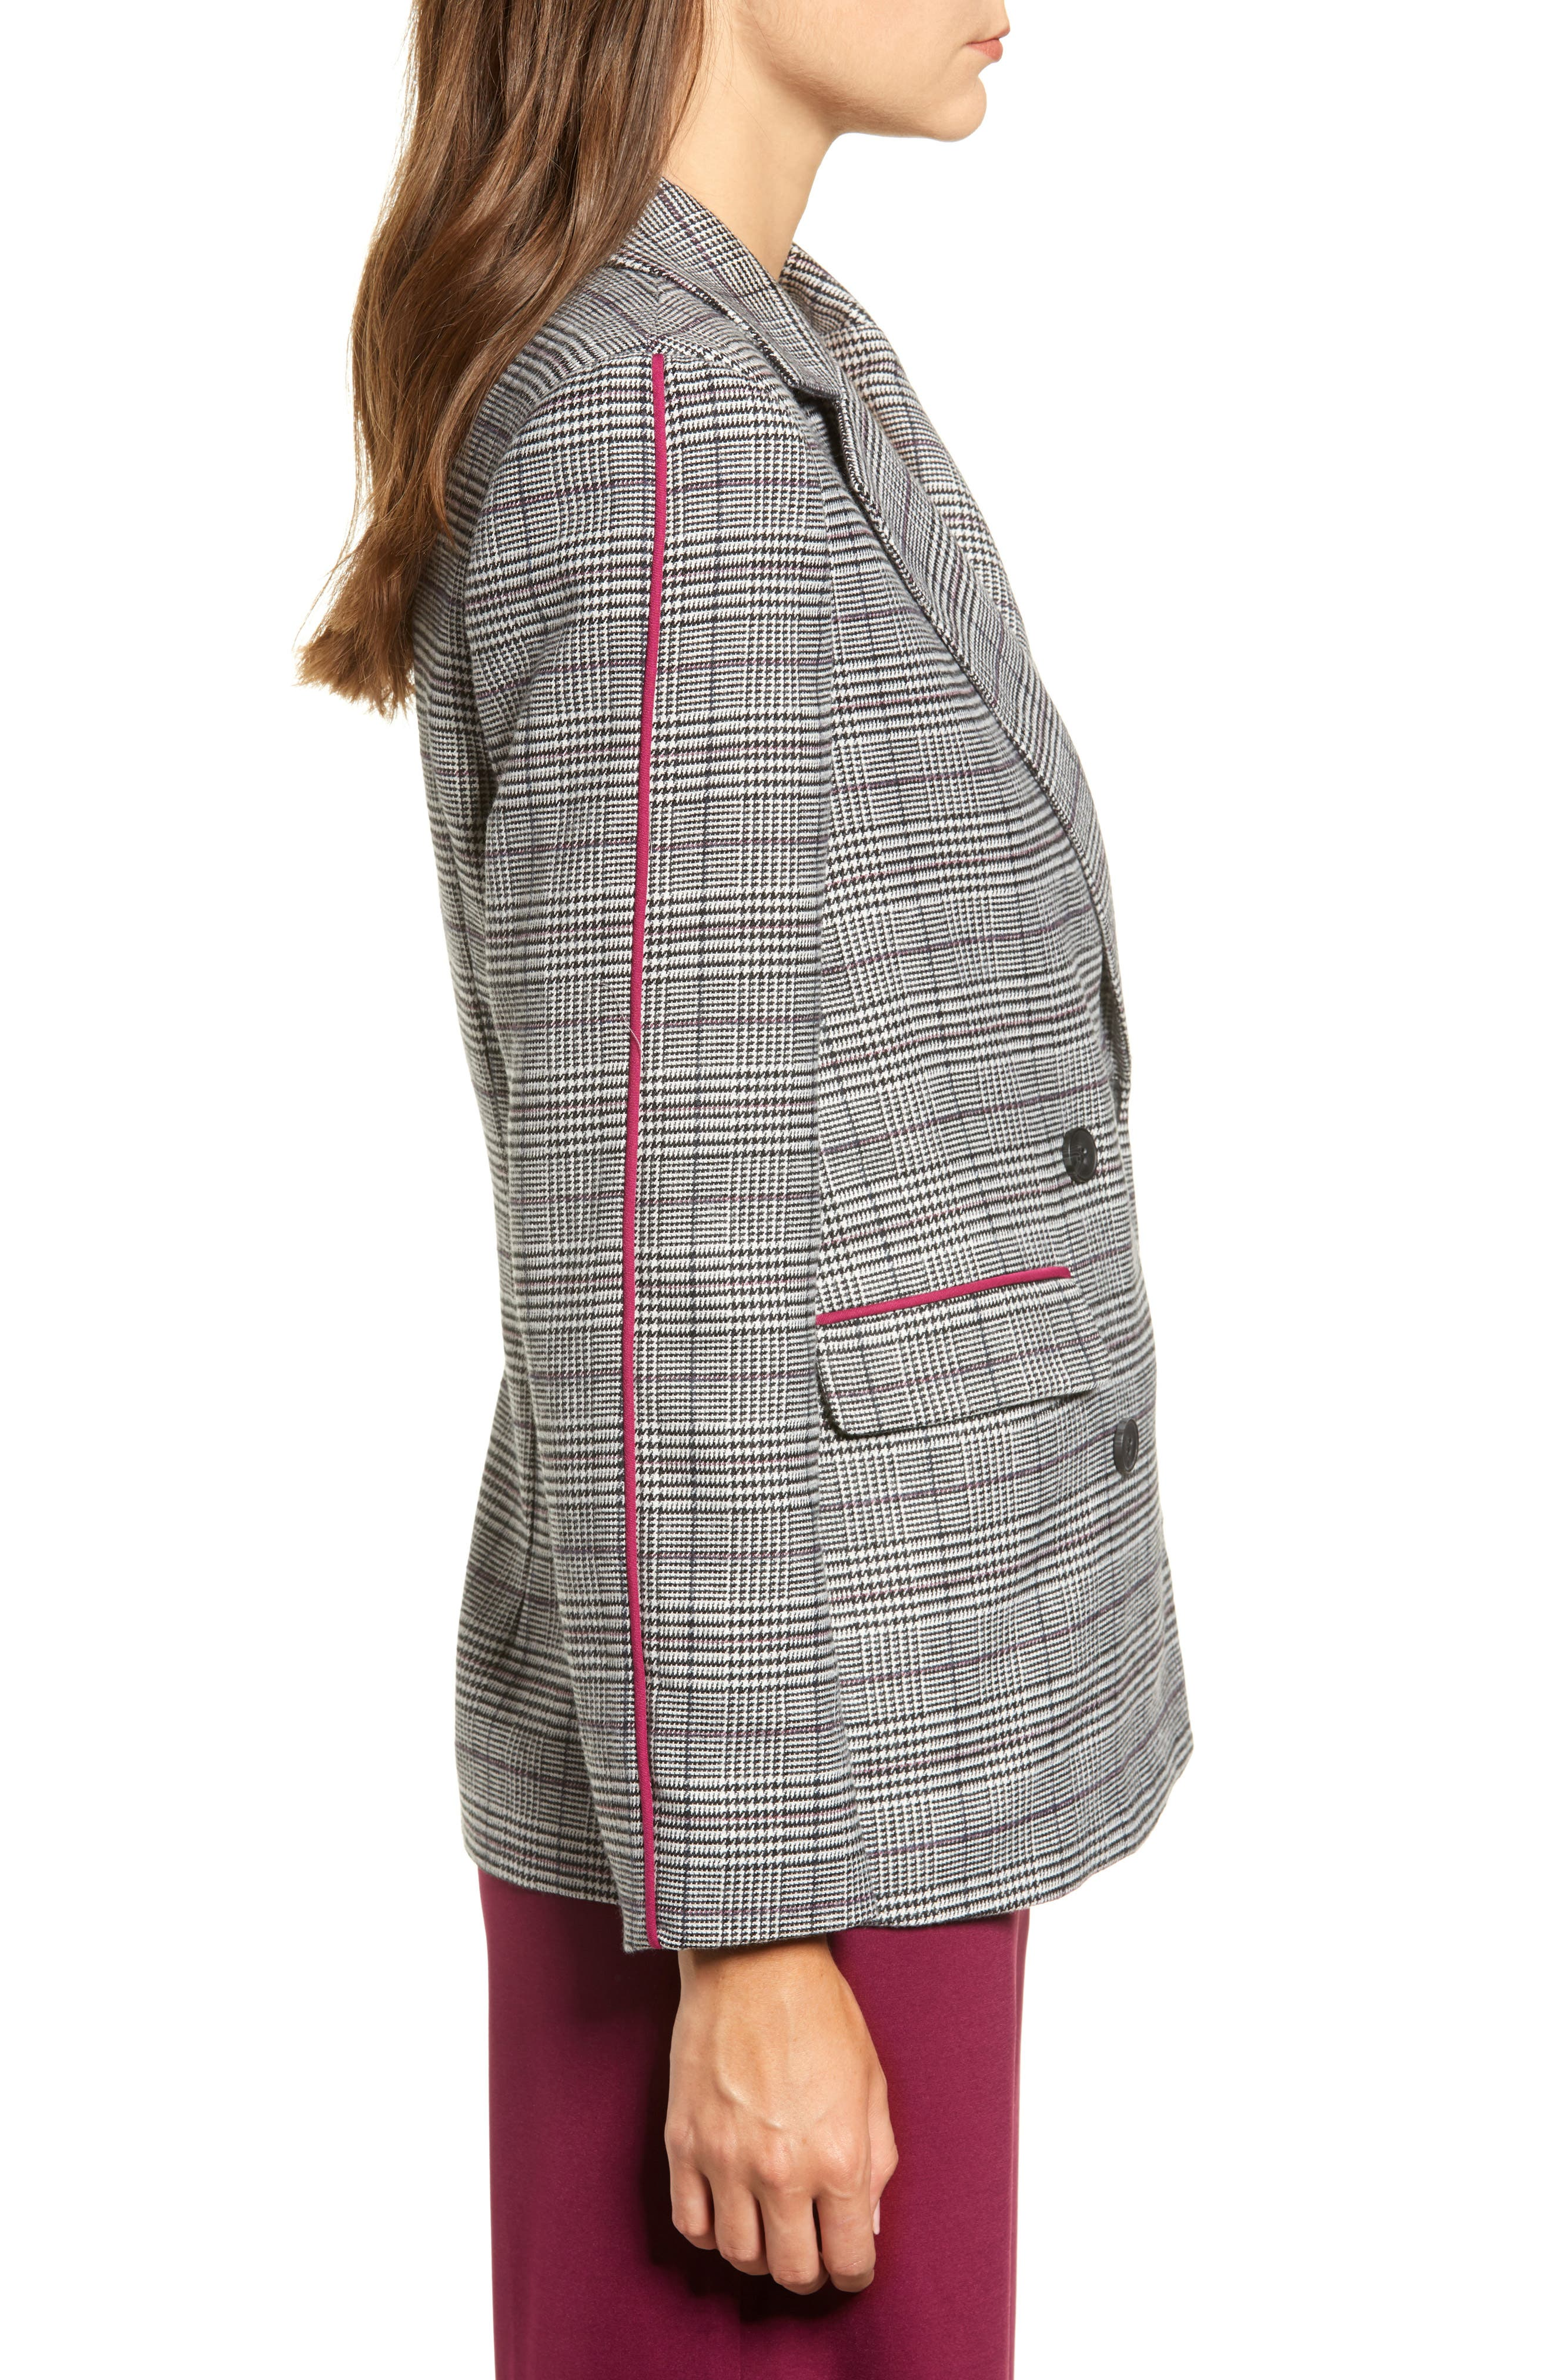 Chriselle Lim Bianca Piped Houndstooth Blazer,                             Alternate thumbnail 4, color,                             GREY PLAID